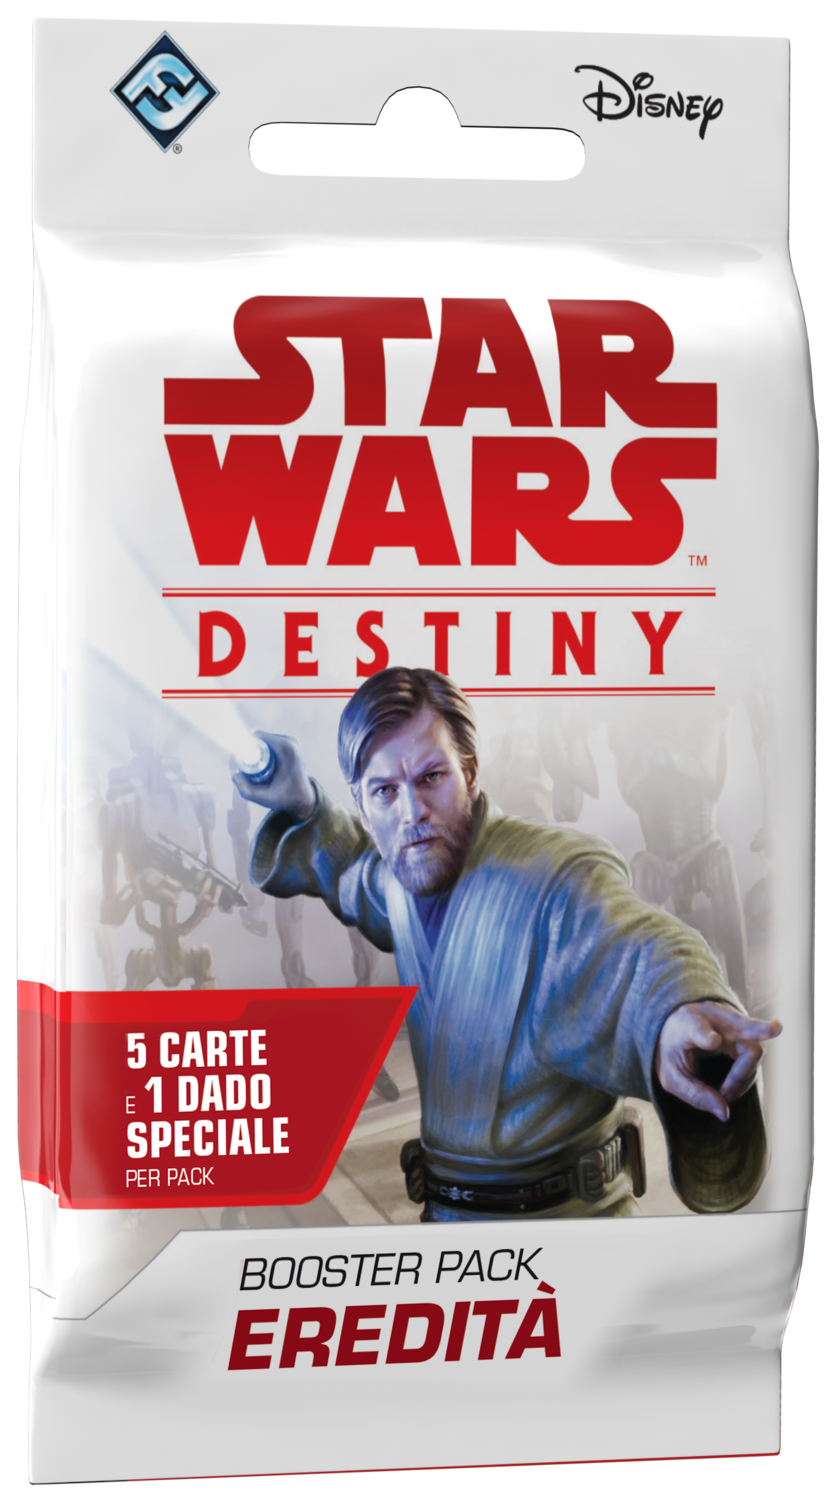 Star Wars Destiny - Eredità Booster